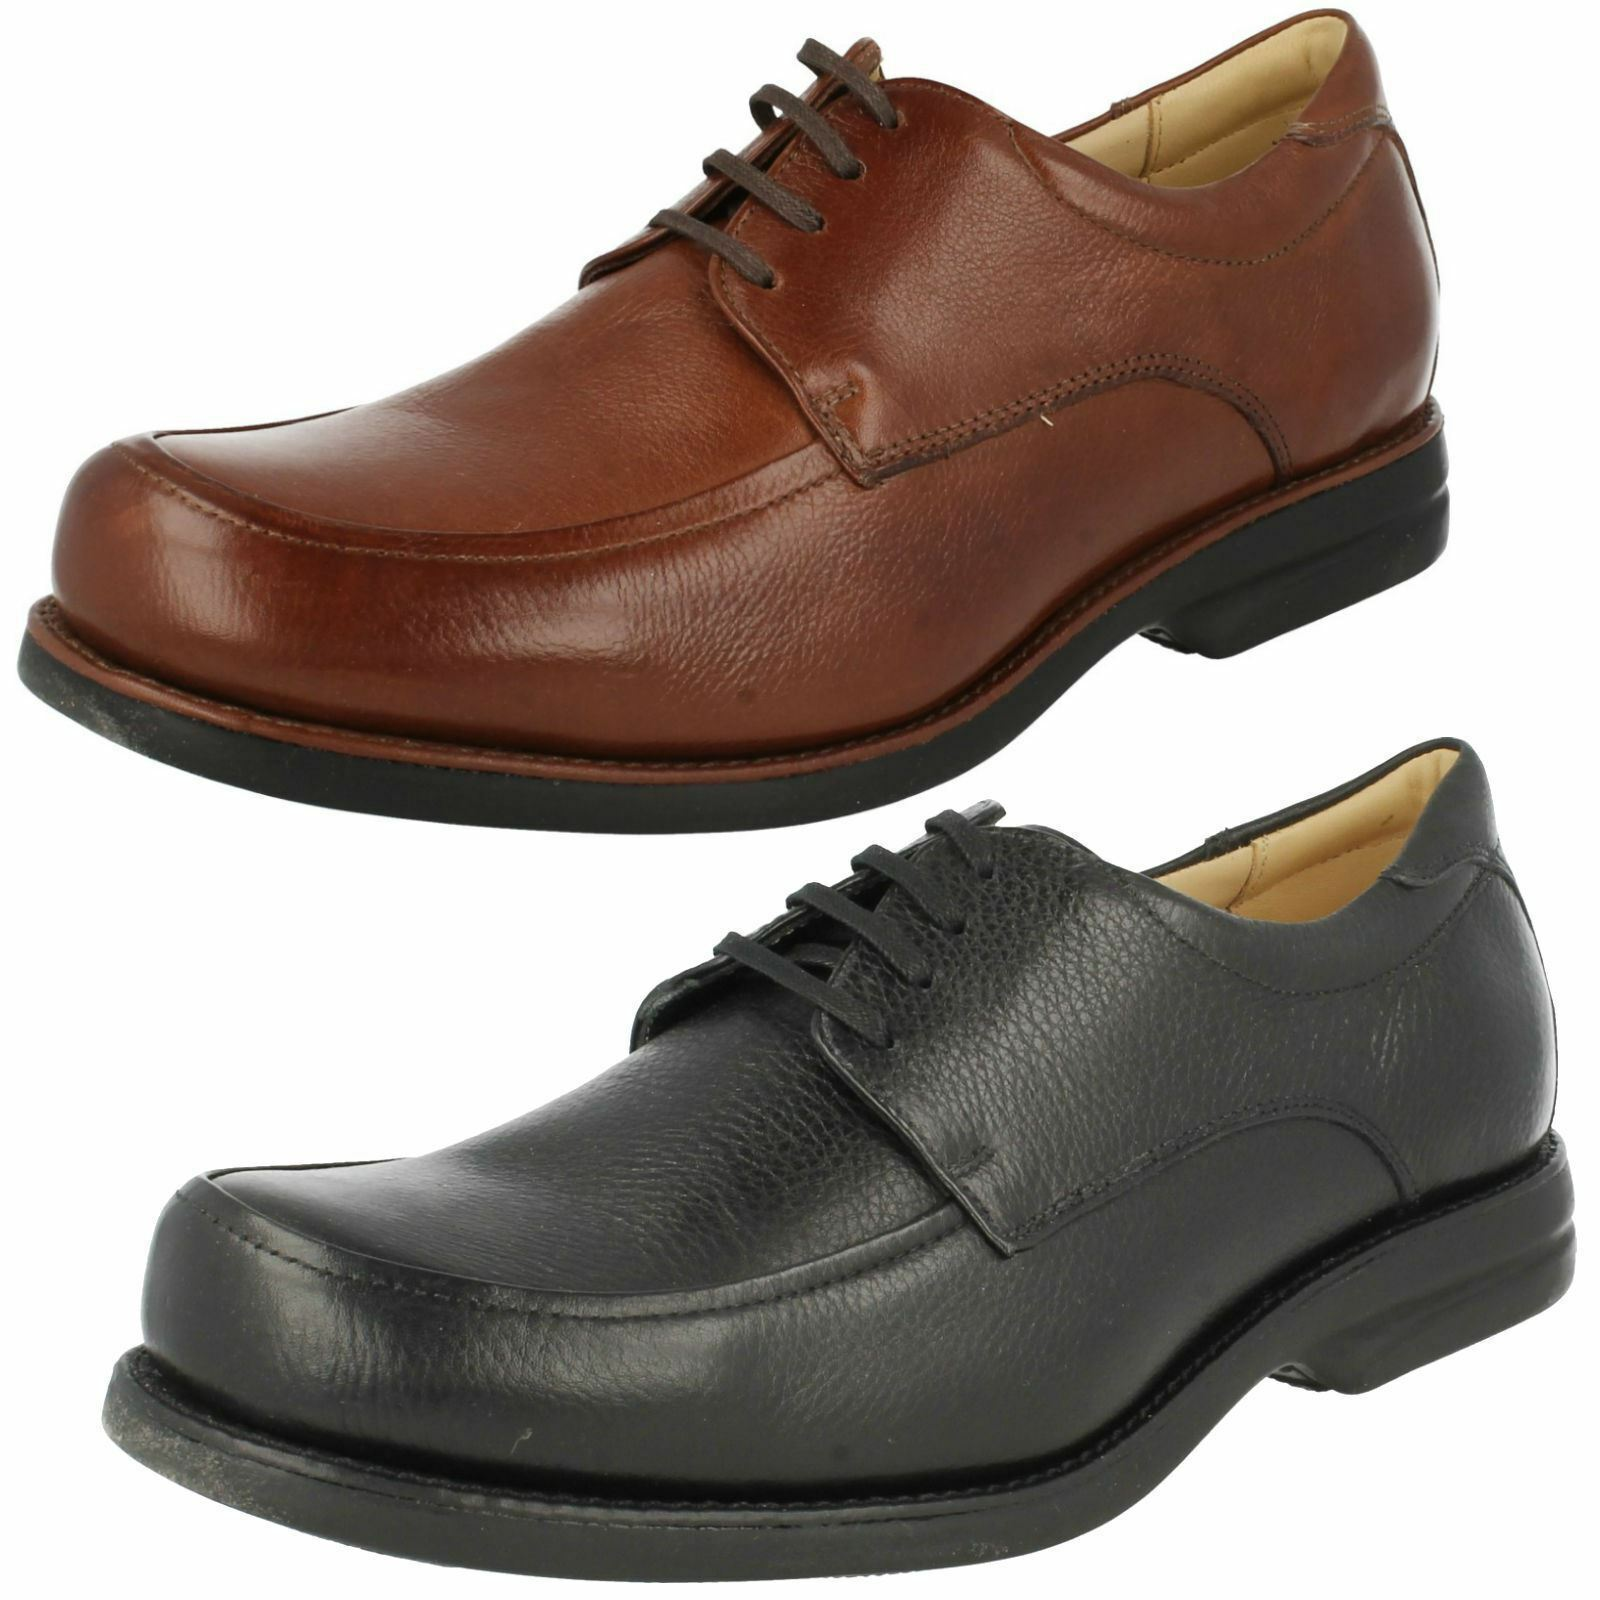 Herren Formal Anatomic  Co Formal Herren Schuhes - Anapolis 68d866